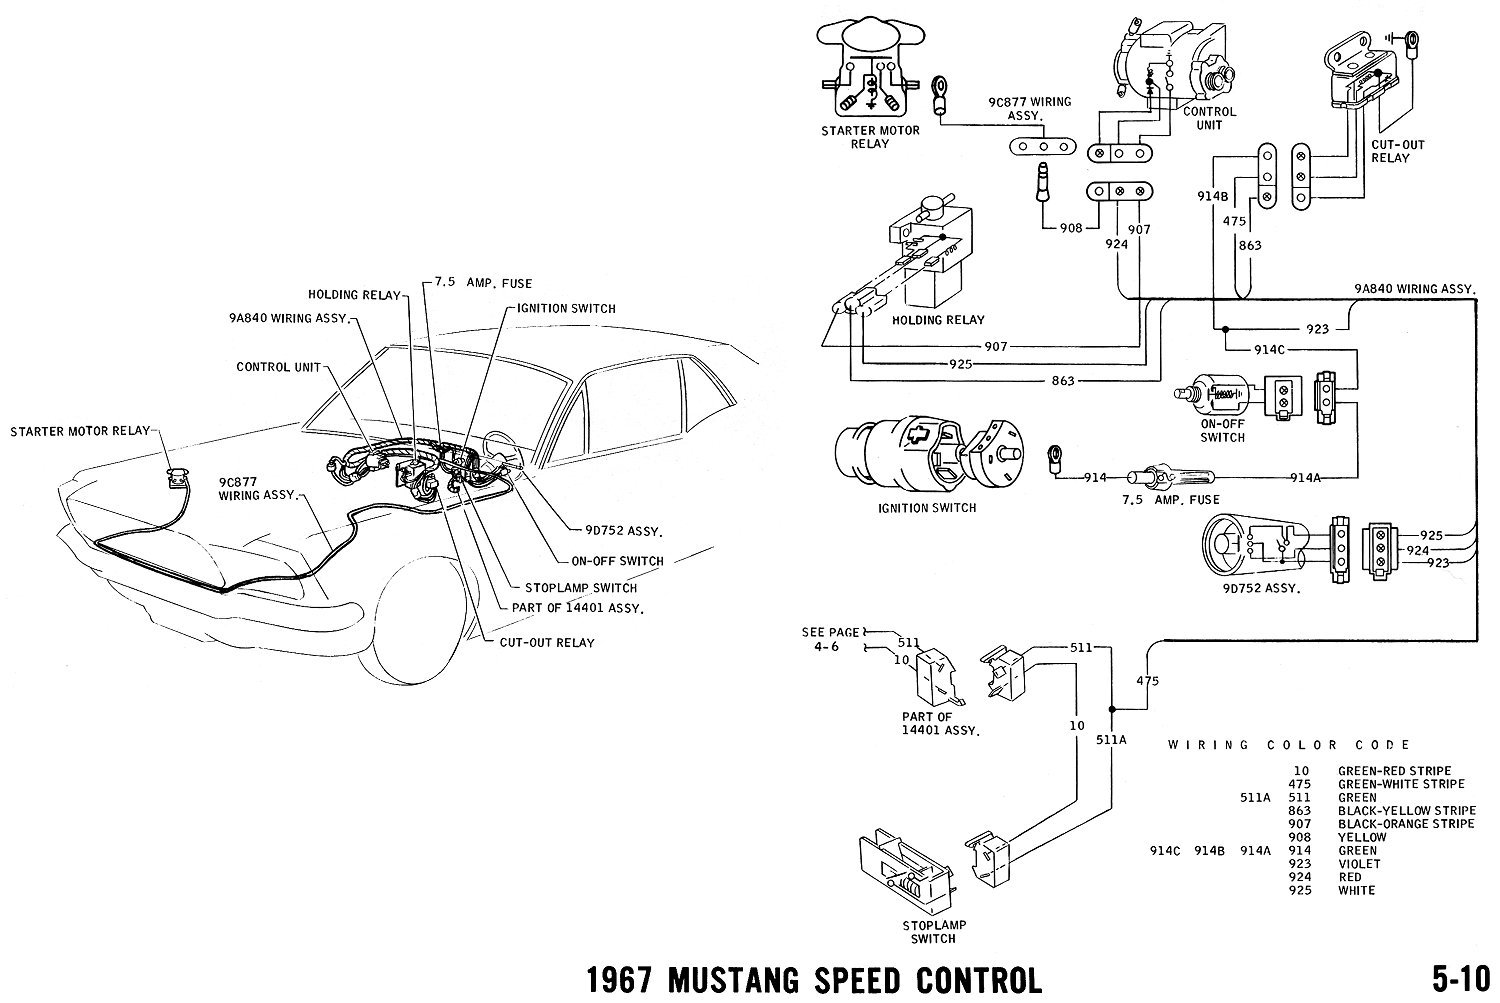 67speed 1967 mustang wiring and vacuum diagrams average joe restoration 65 mustang alternator wiring diagram at crackthecode.co